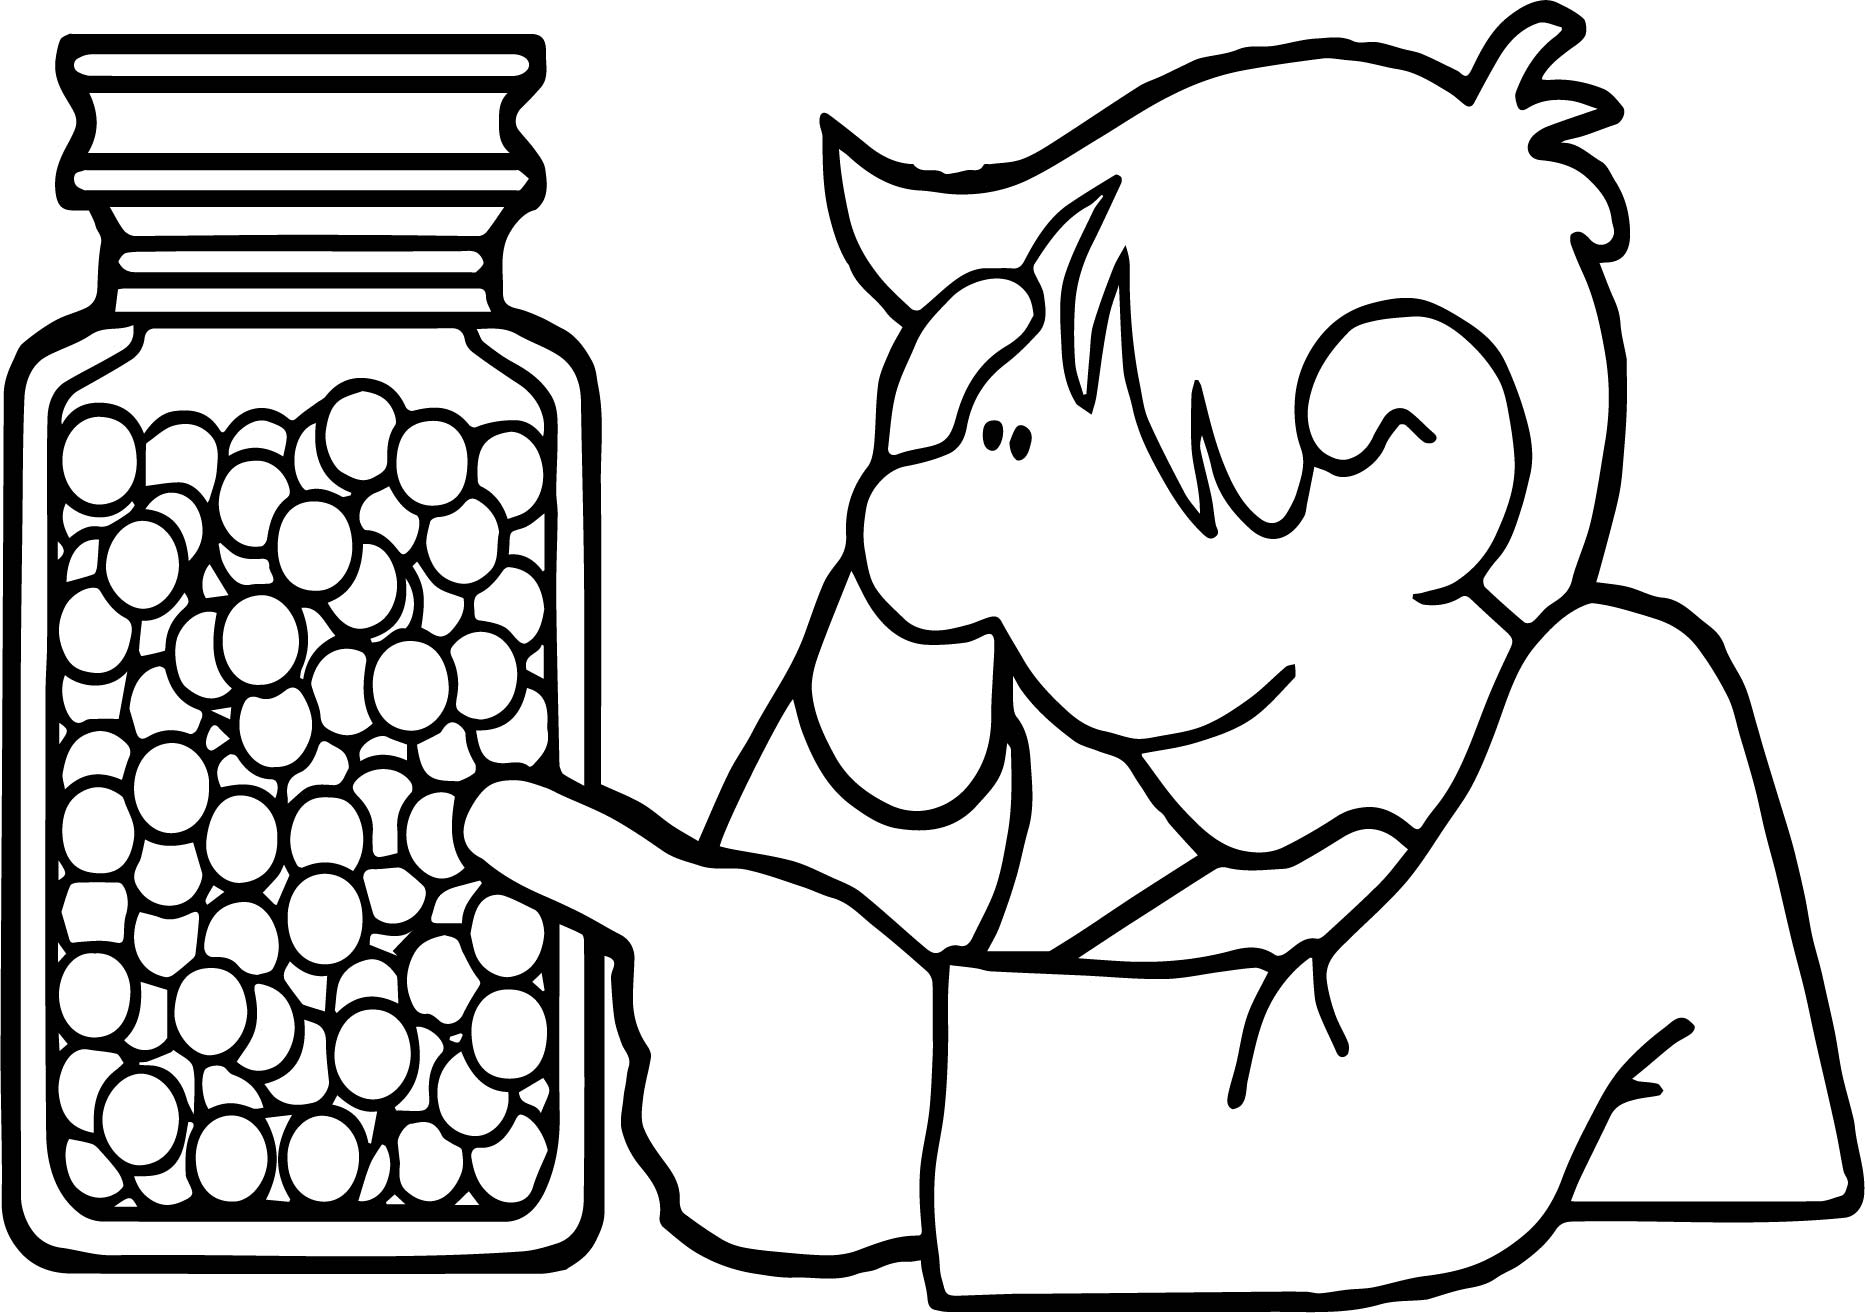 toys marbles children kid coloring page wecoloringpage